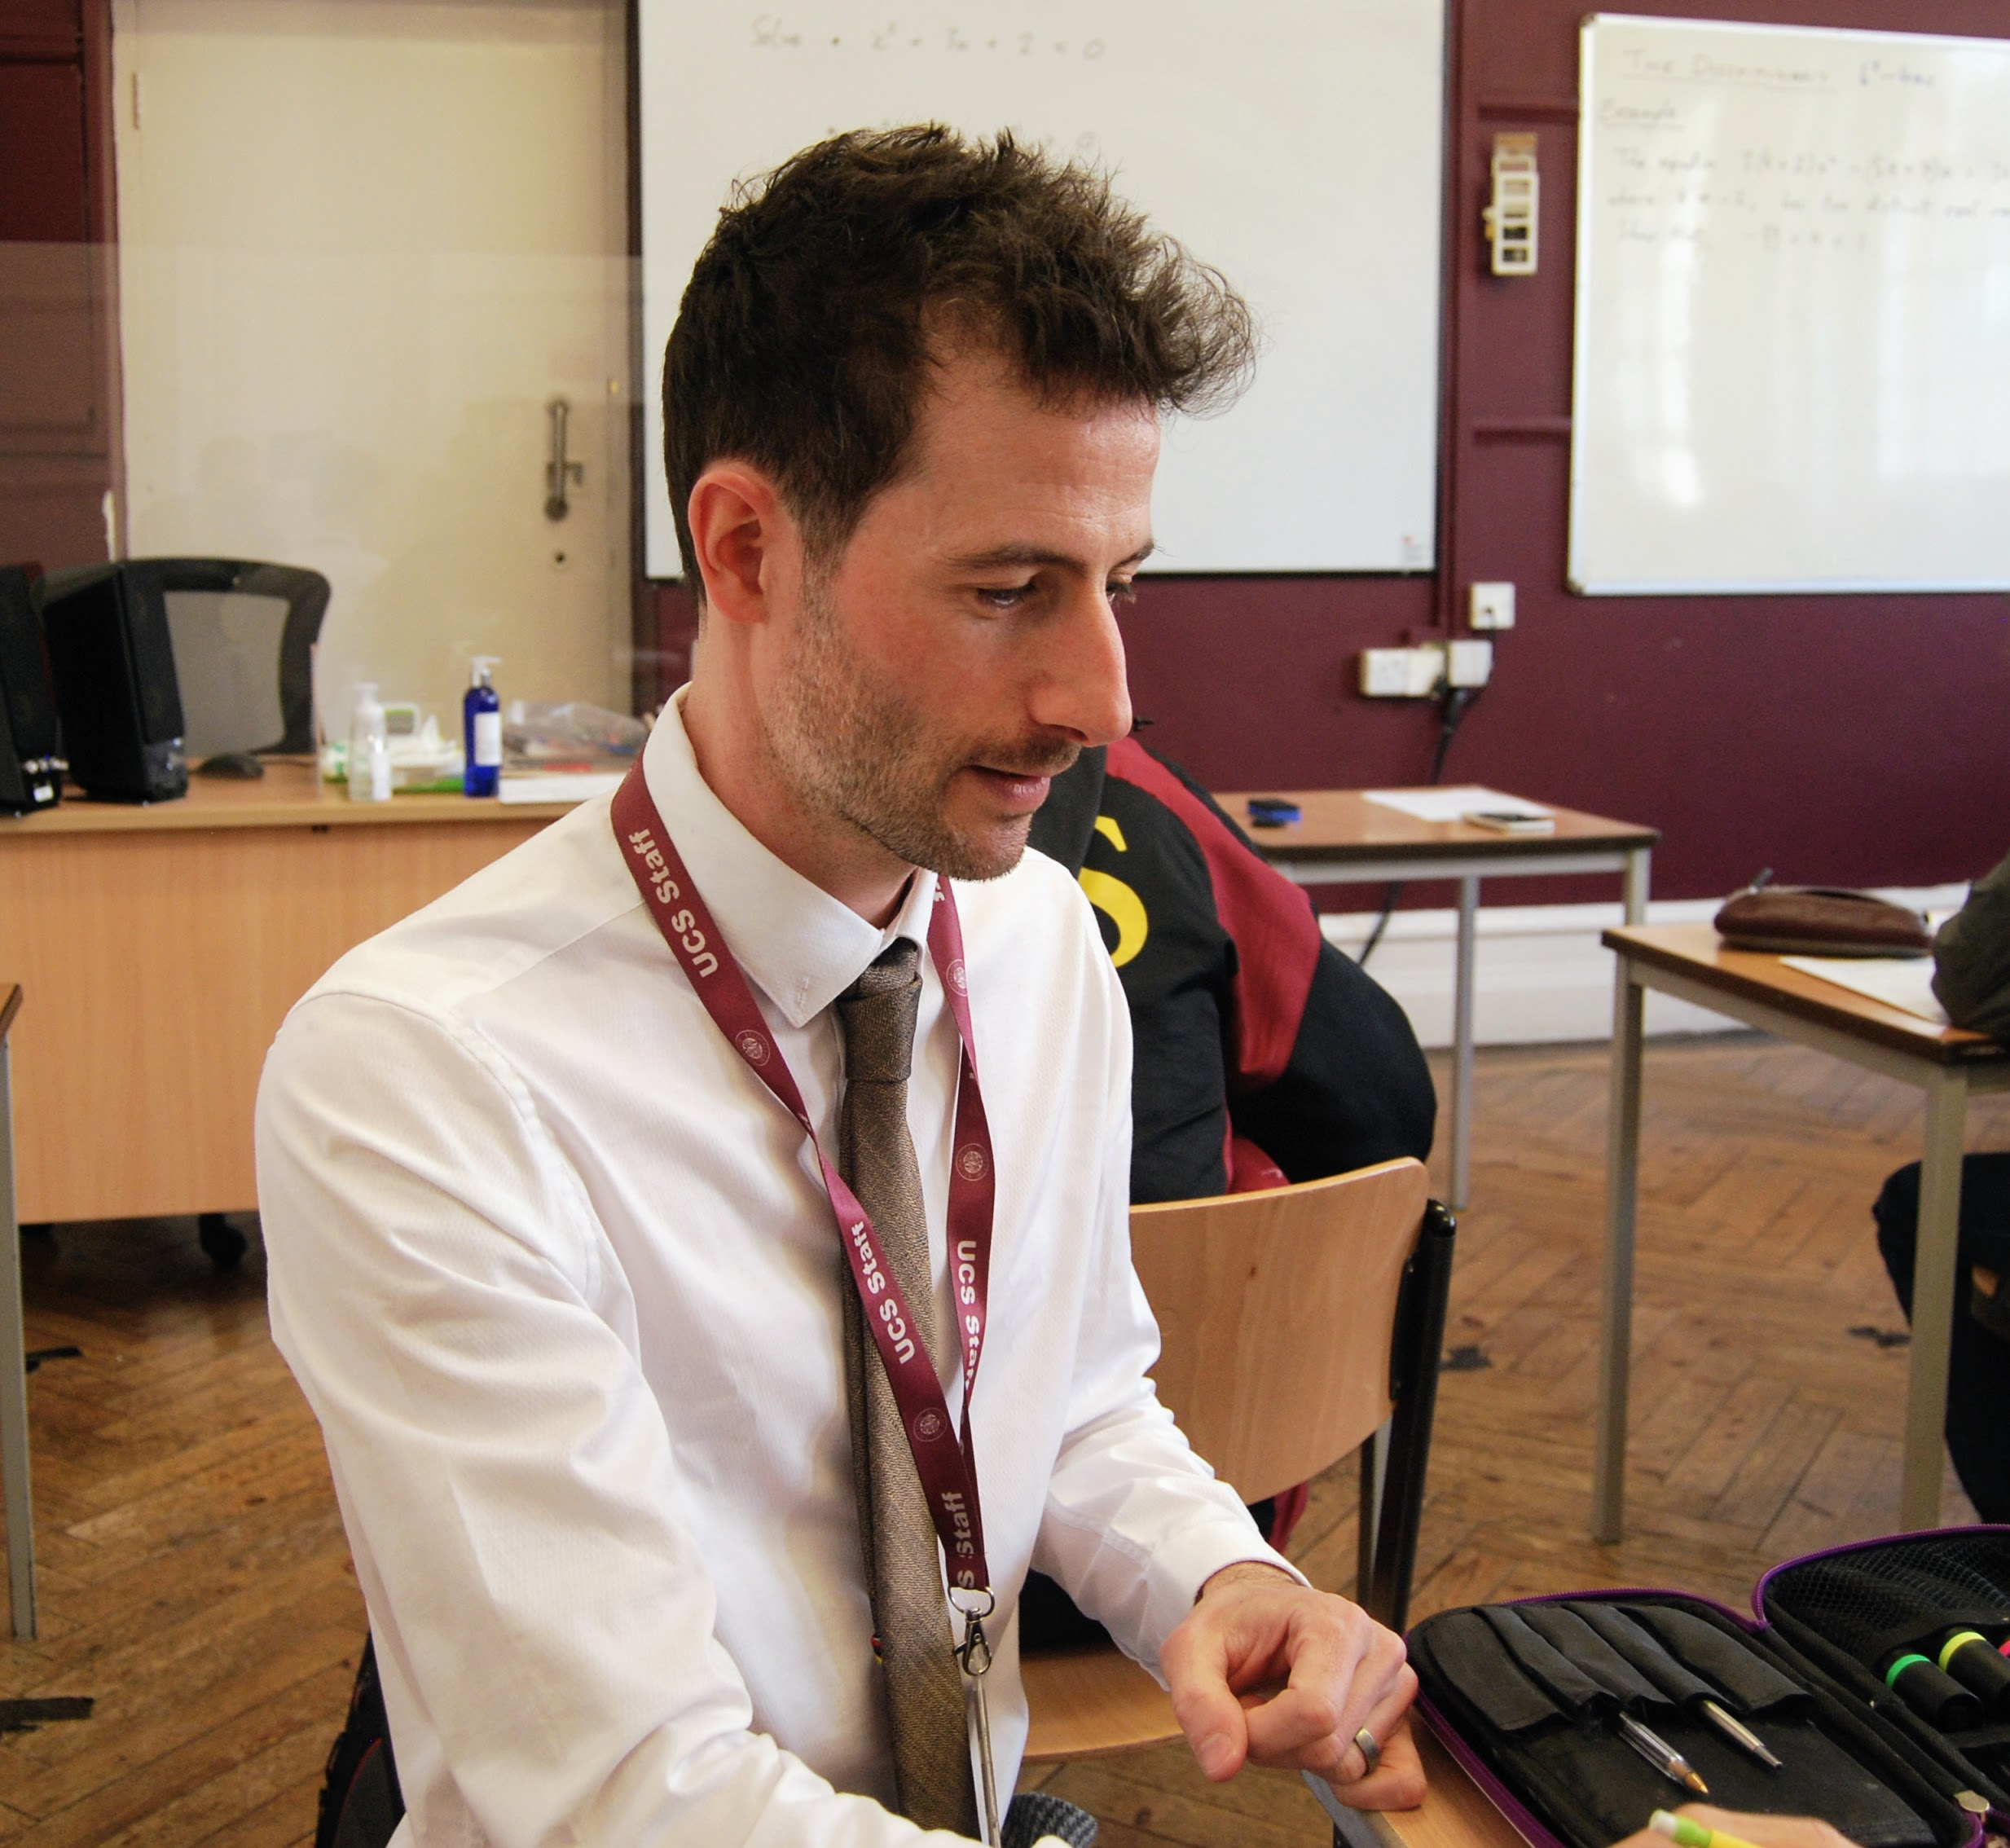 Micky Bullock teaching at a pupil's desk